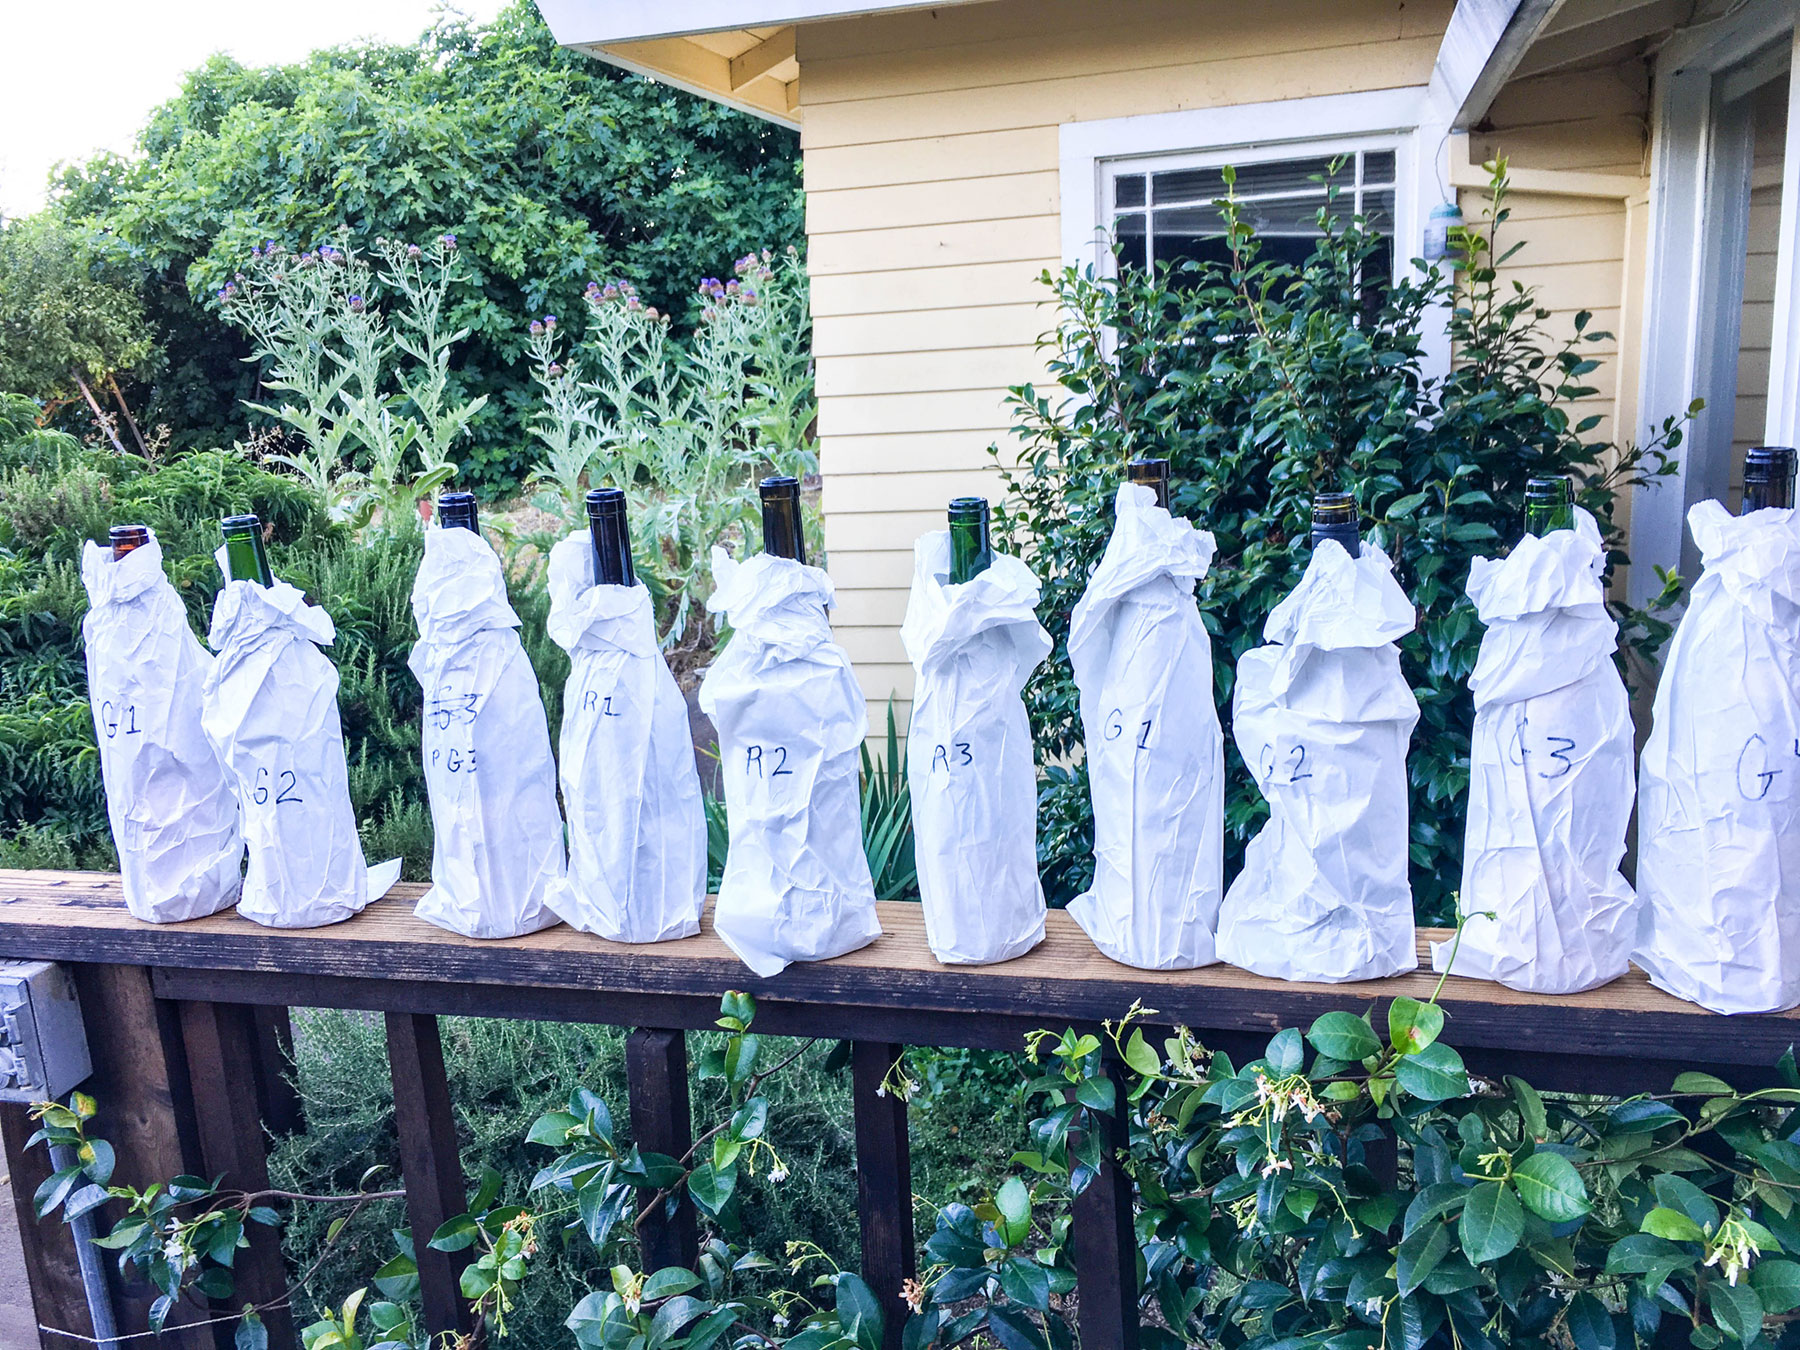 a line of paper-bagged wine bottles lined up on a fence